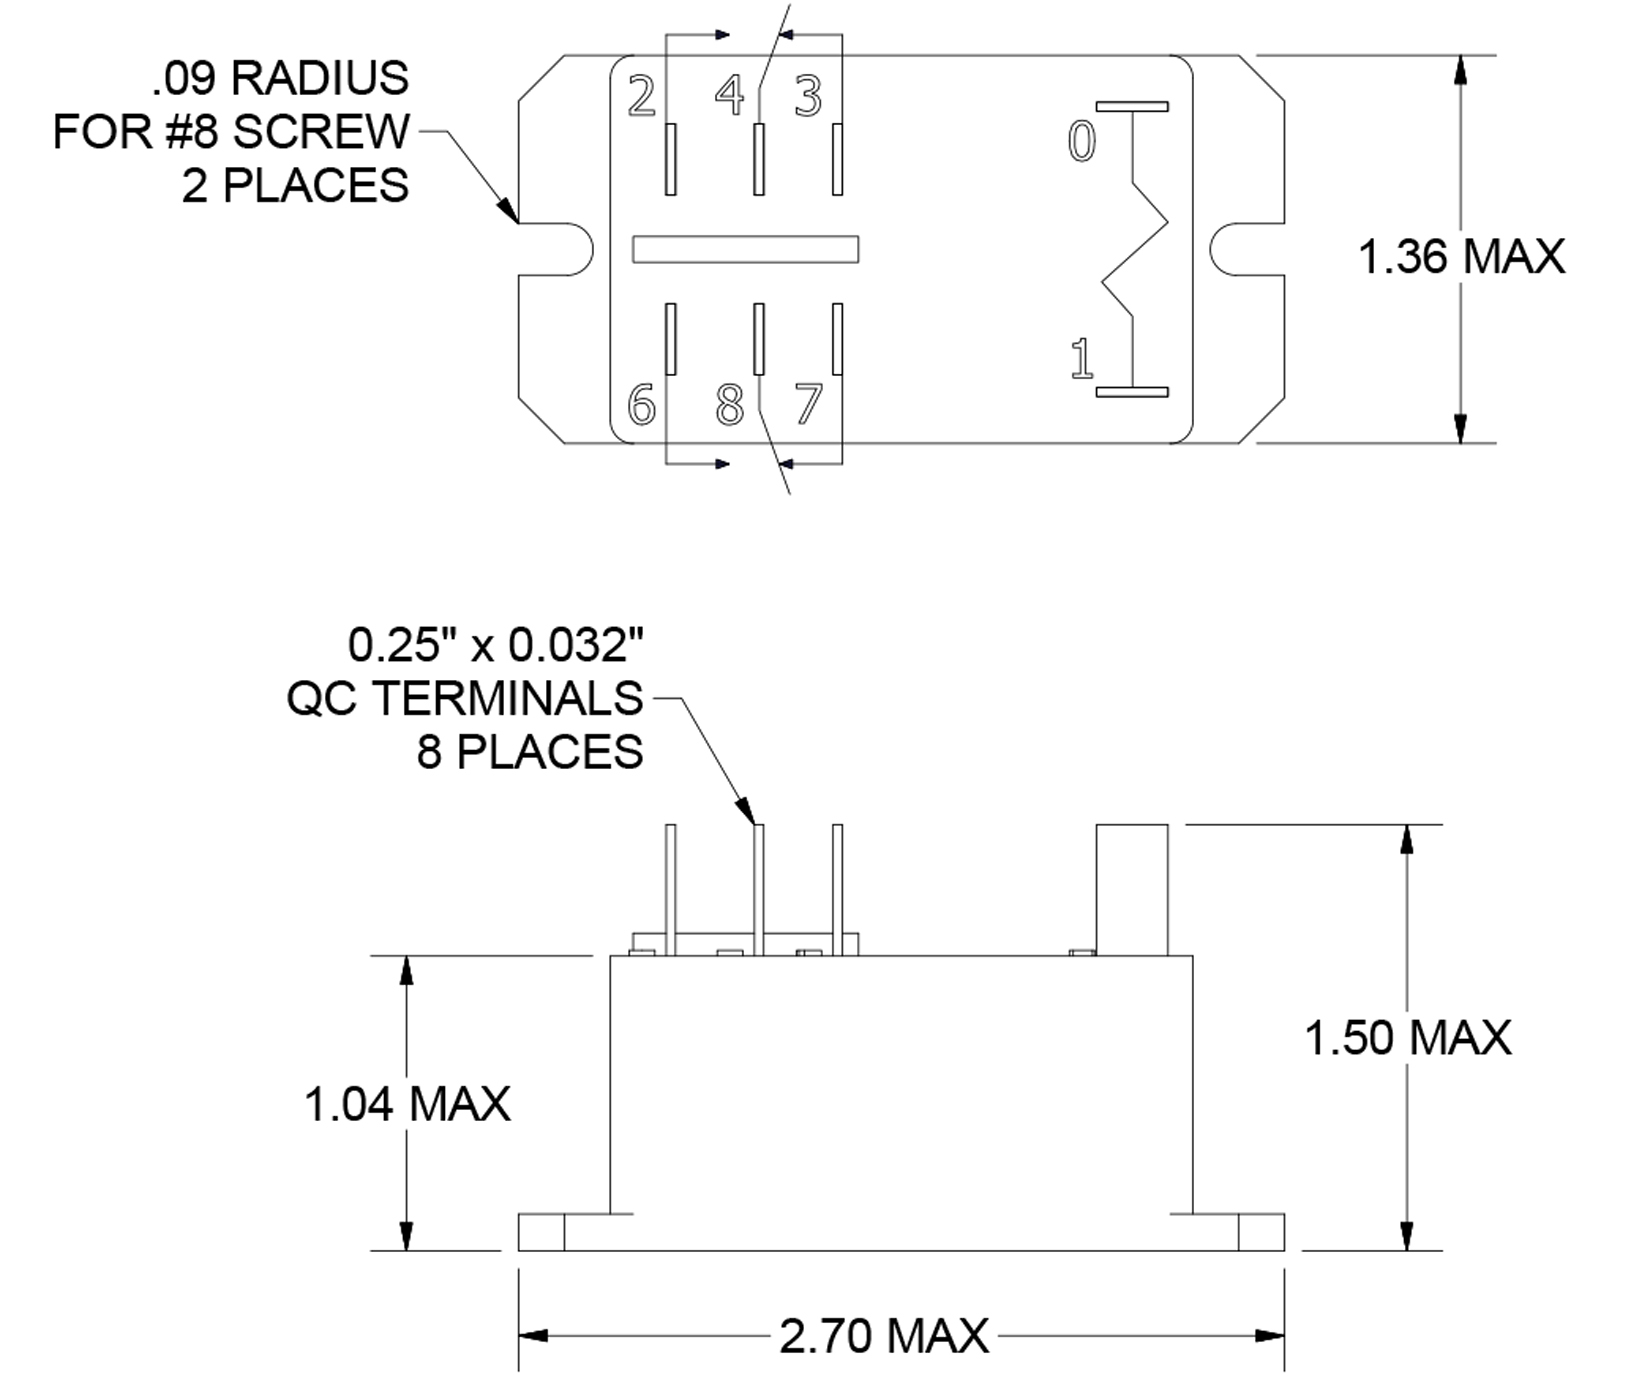 Spdt Relay Wiring Diagram Multiple Circuit And Hub 12v Two Coil Dpst Auto Electrical 5 Pin